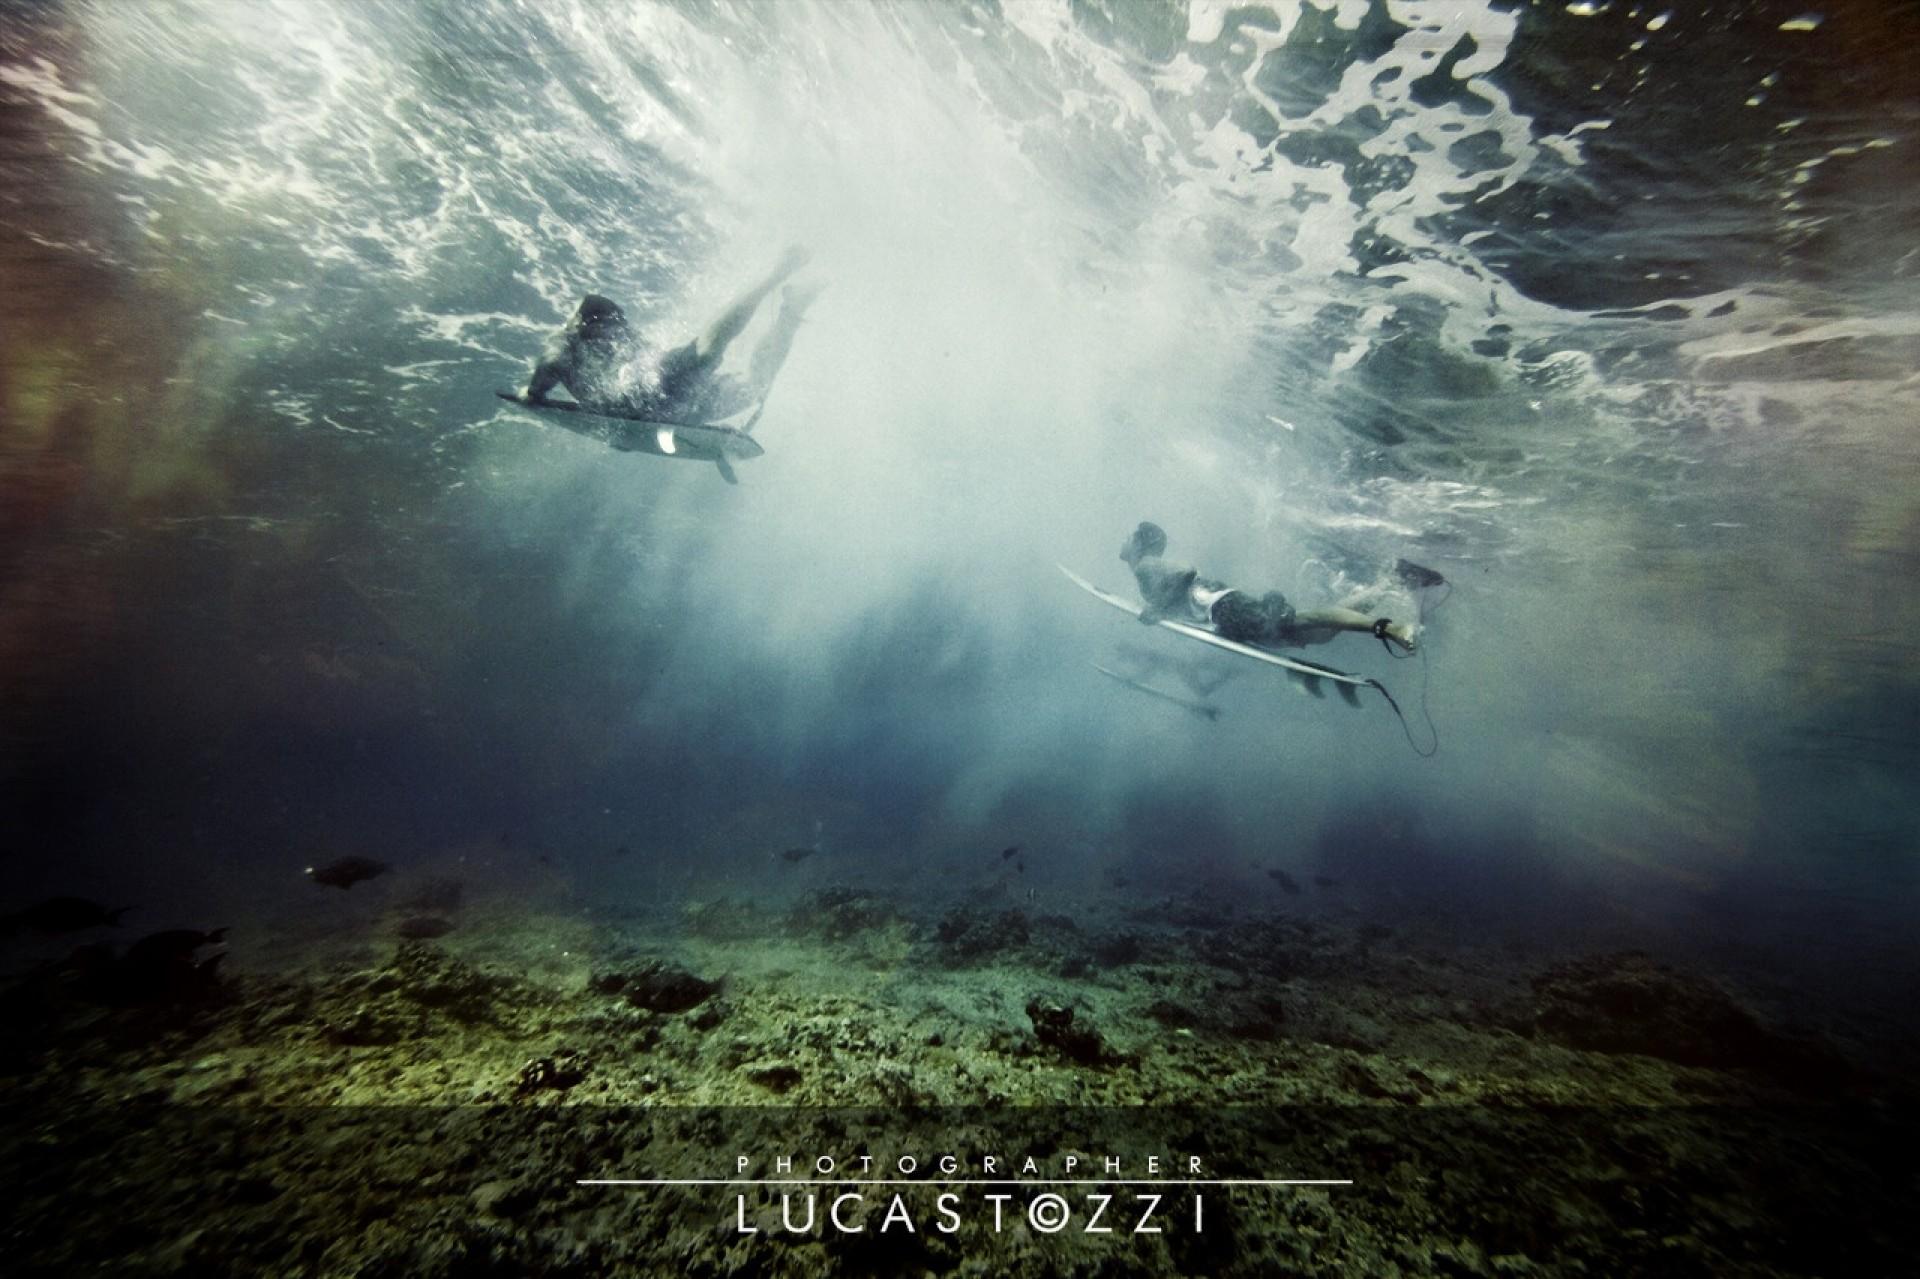 lucastozzi's photo of Sultans